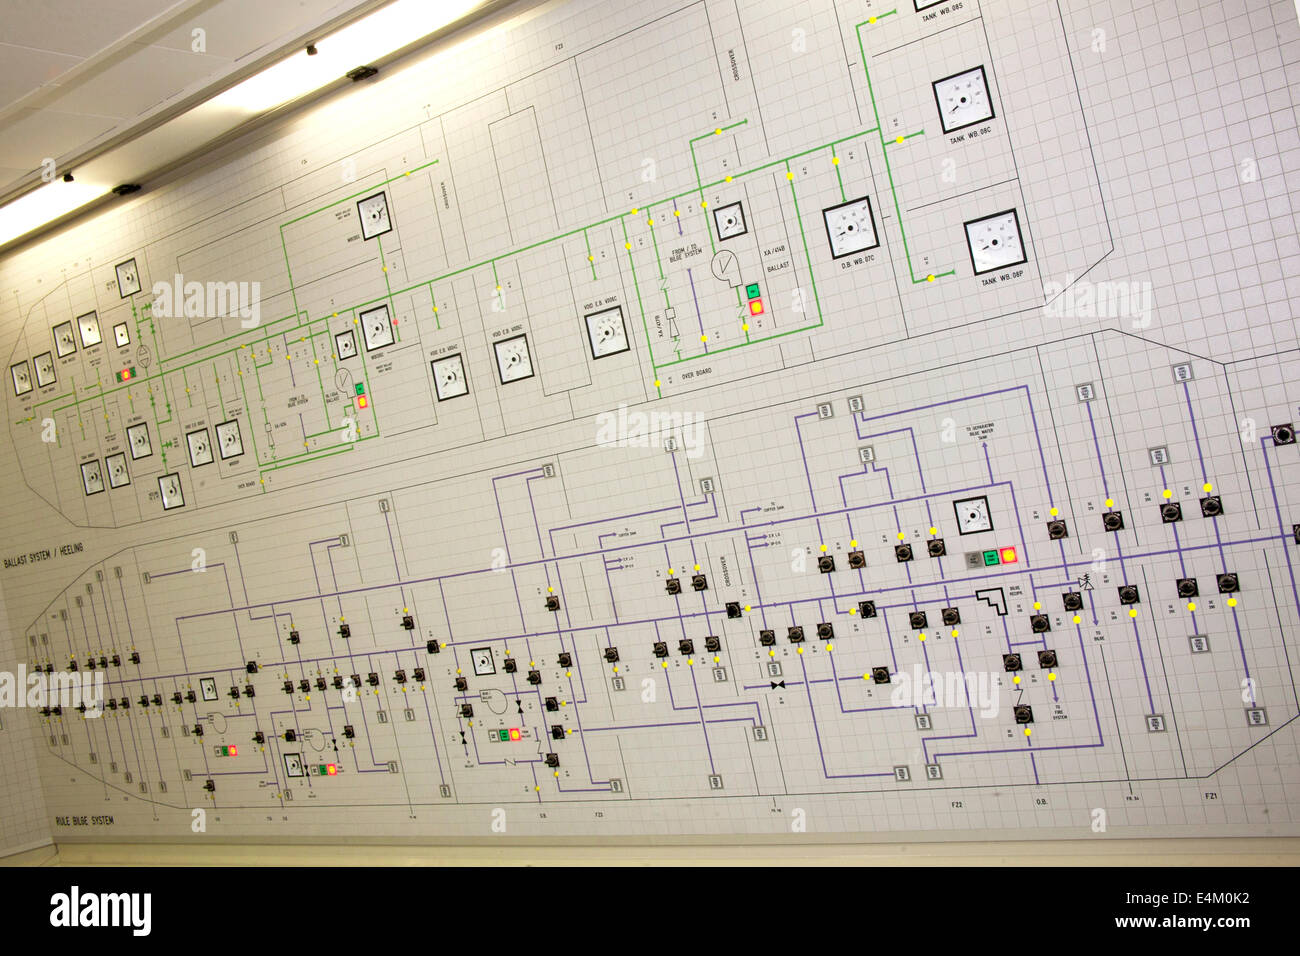 cruise ship diagram sonos speaker wiring of a displaying the status engines in operation